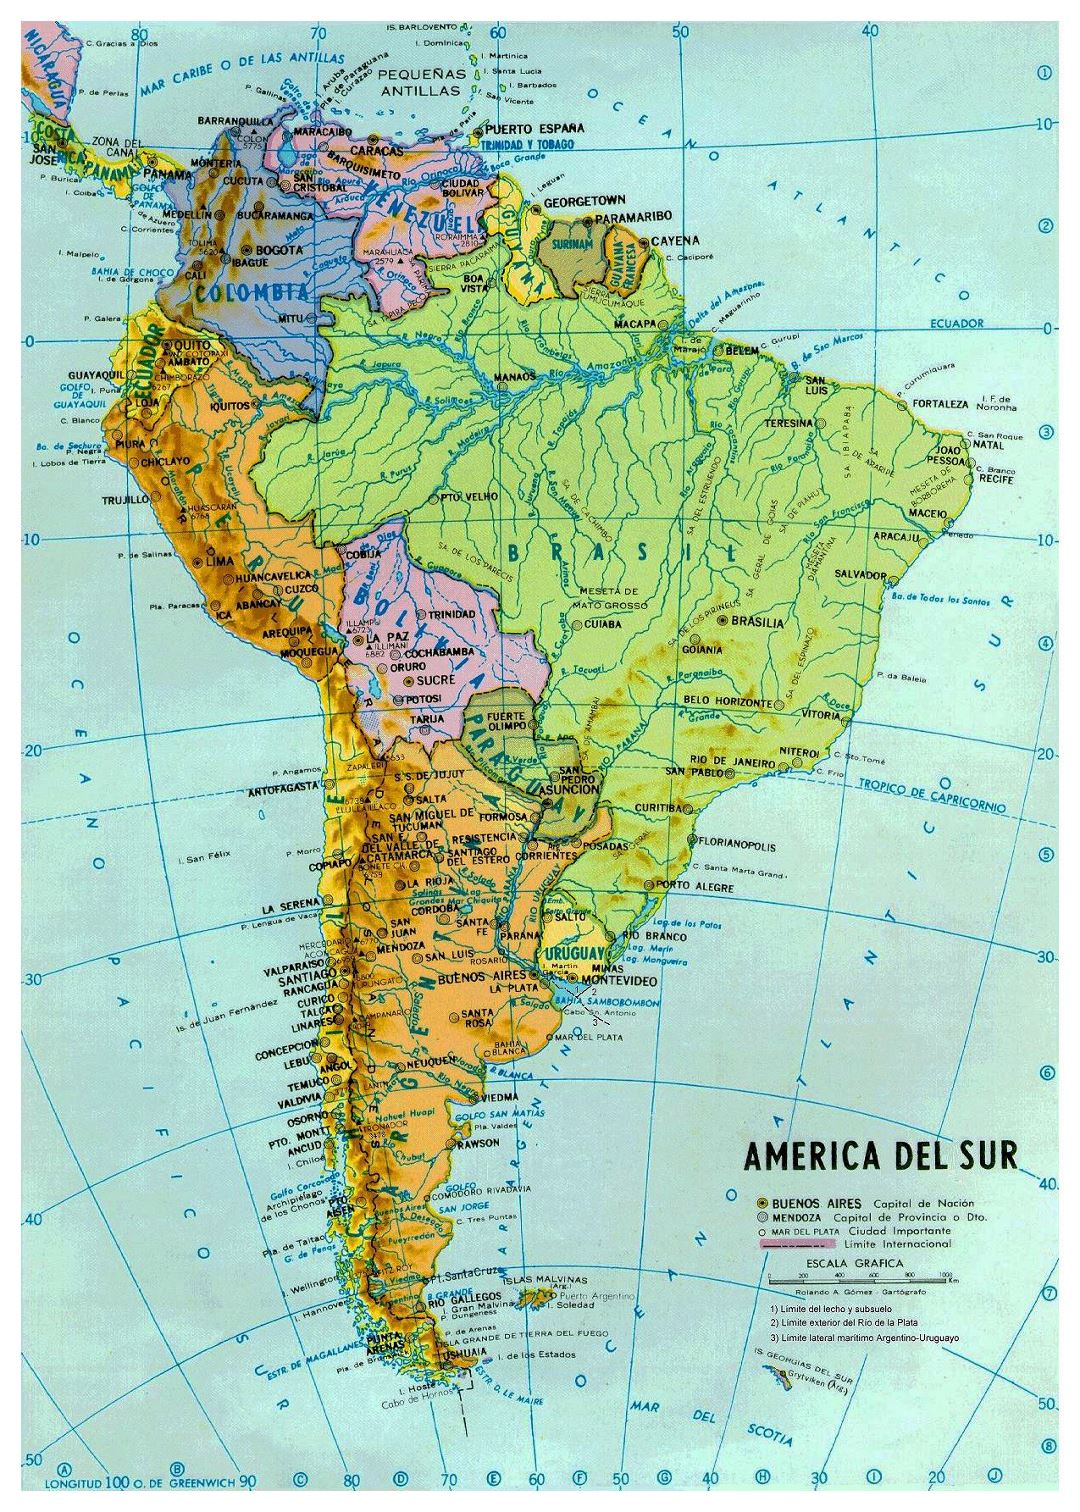 Large political and hydrographic map of South America with major cities and capitals